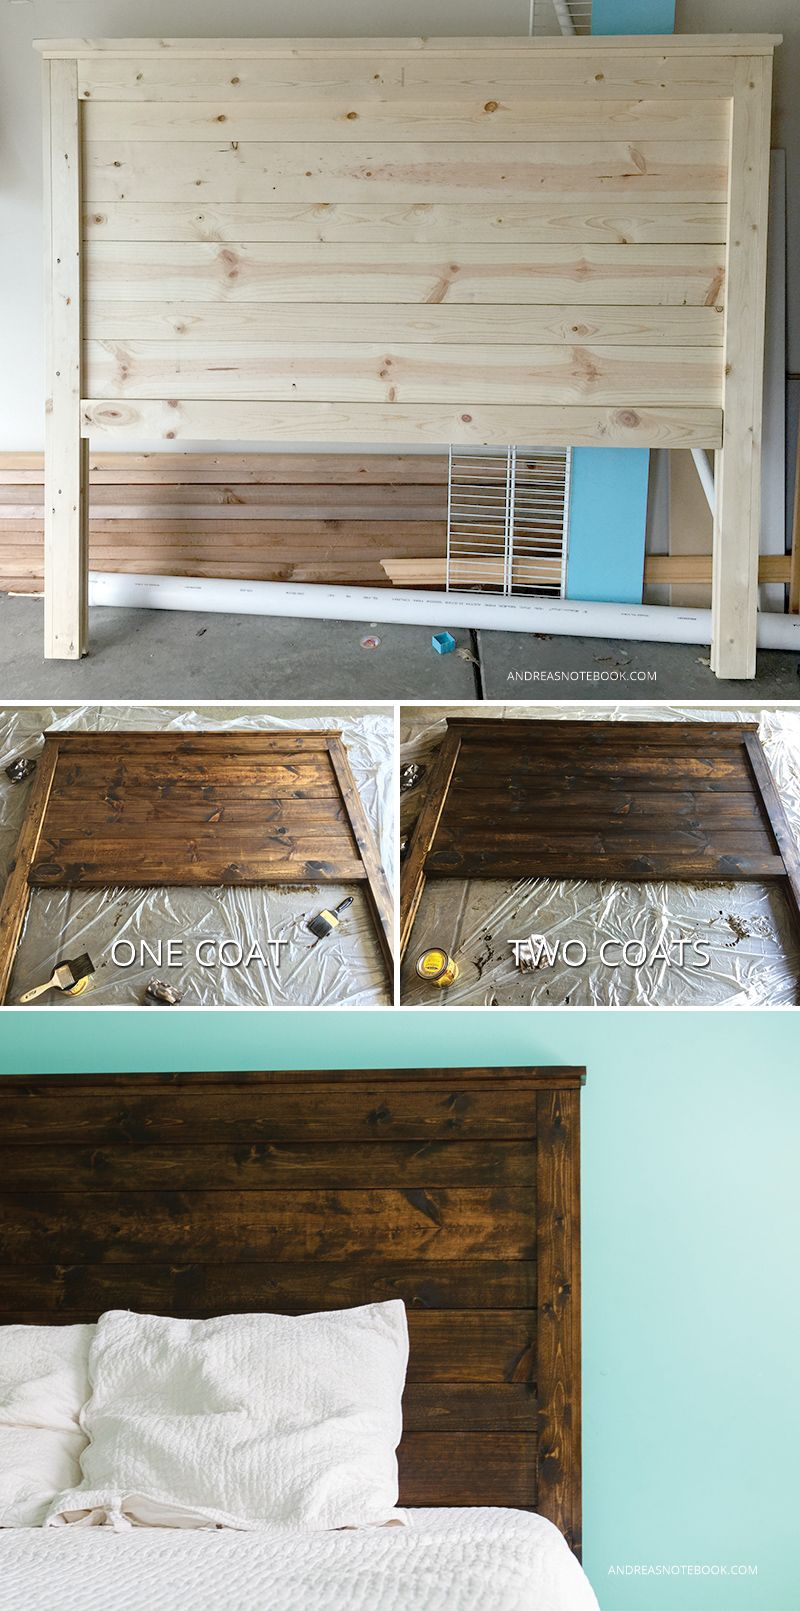 Make your own DIY rustic headboard - AndreasNotebook.com ...